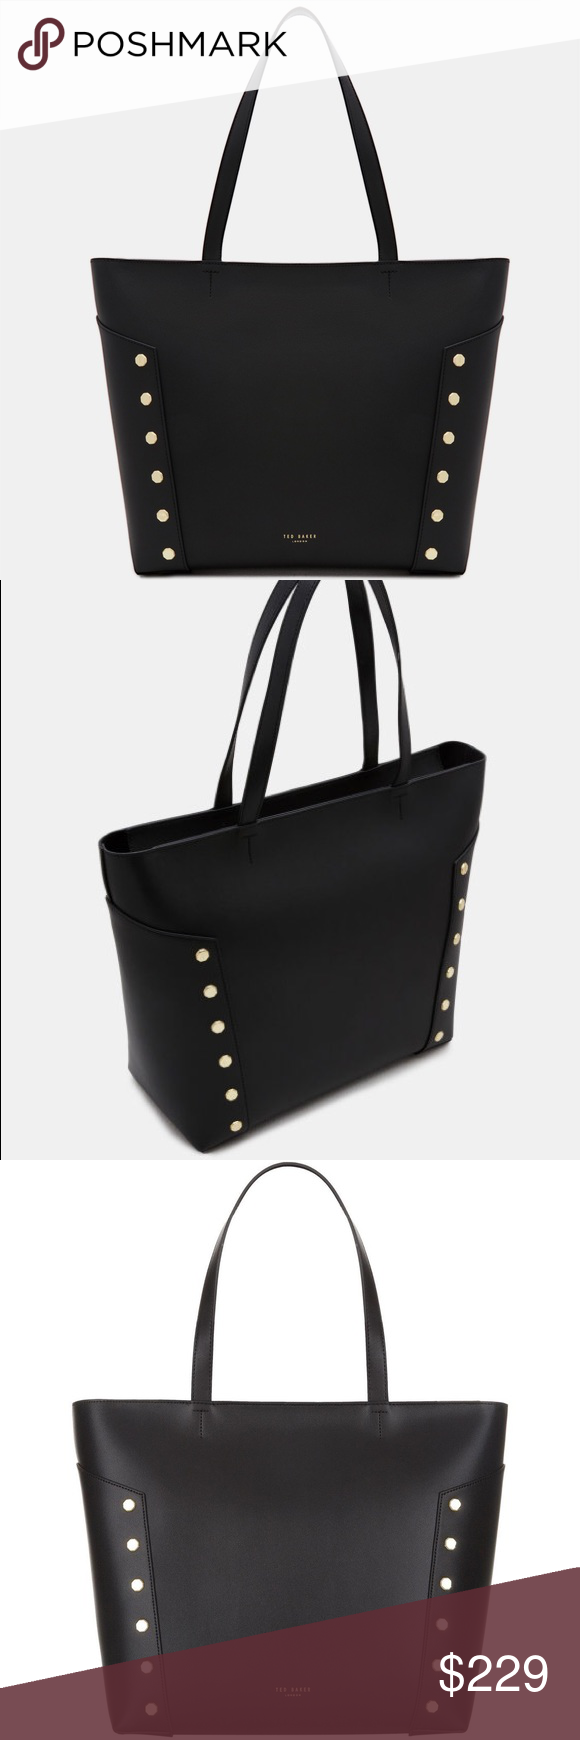 857606b33 TAMIKO Studded edge leather shopper bag Classic in its shape but modernised  by the detail